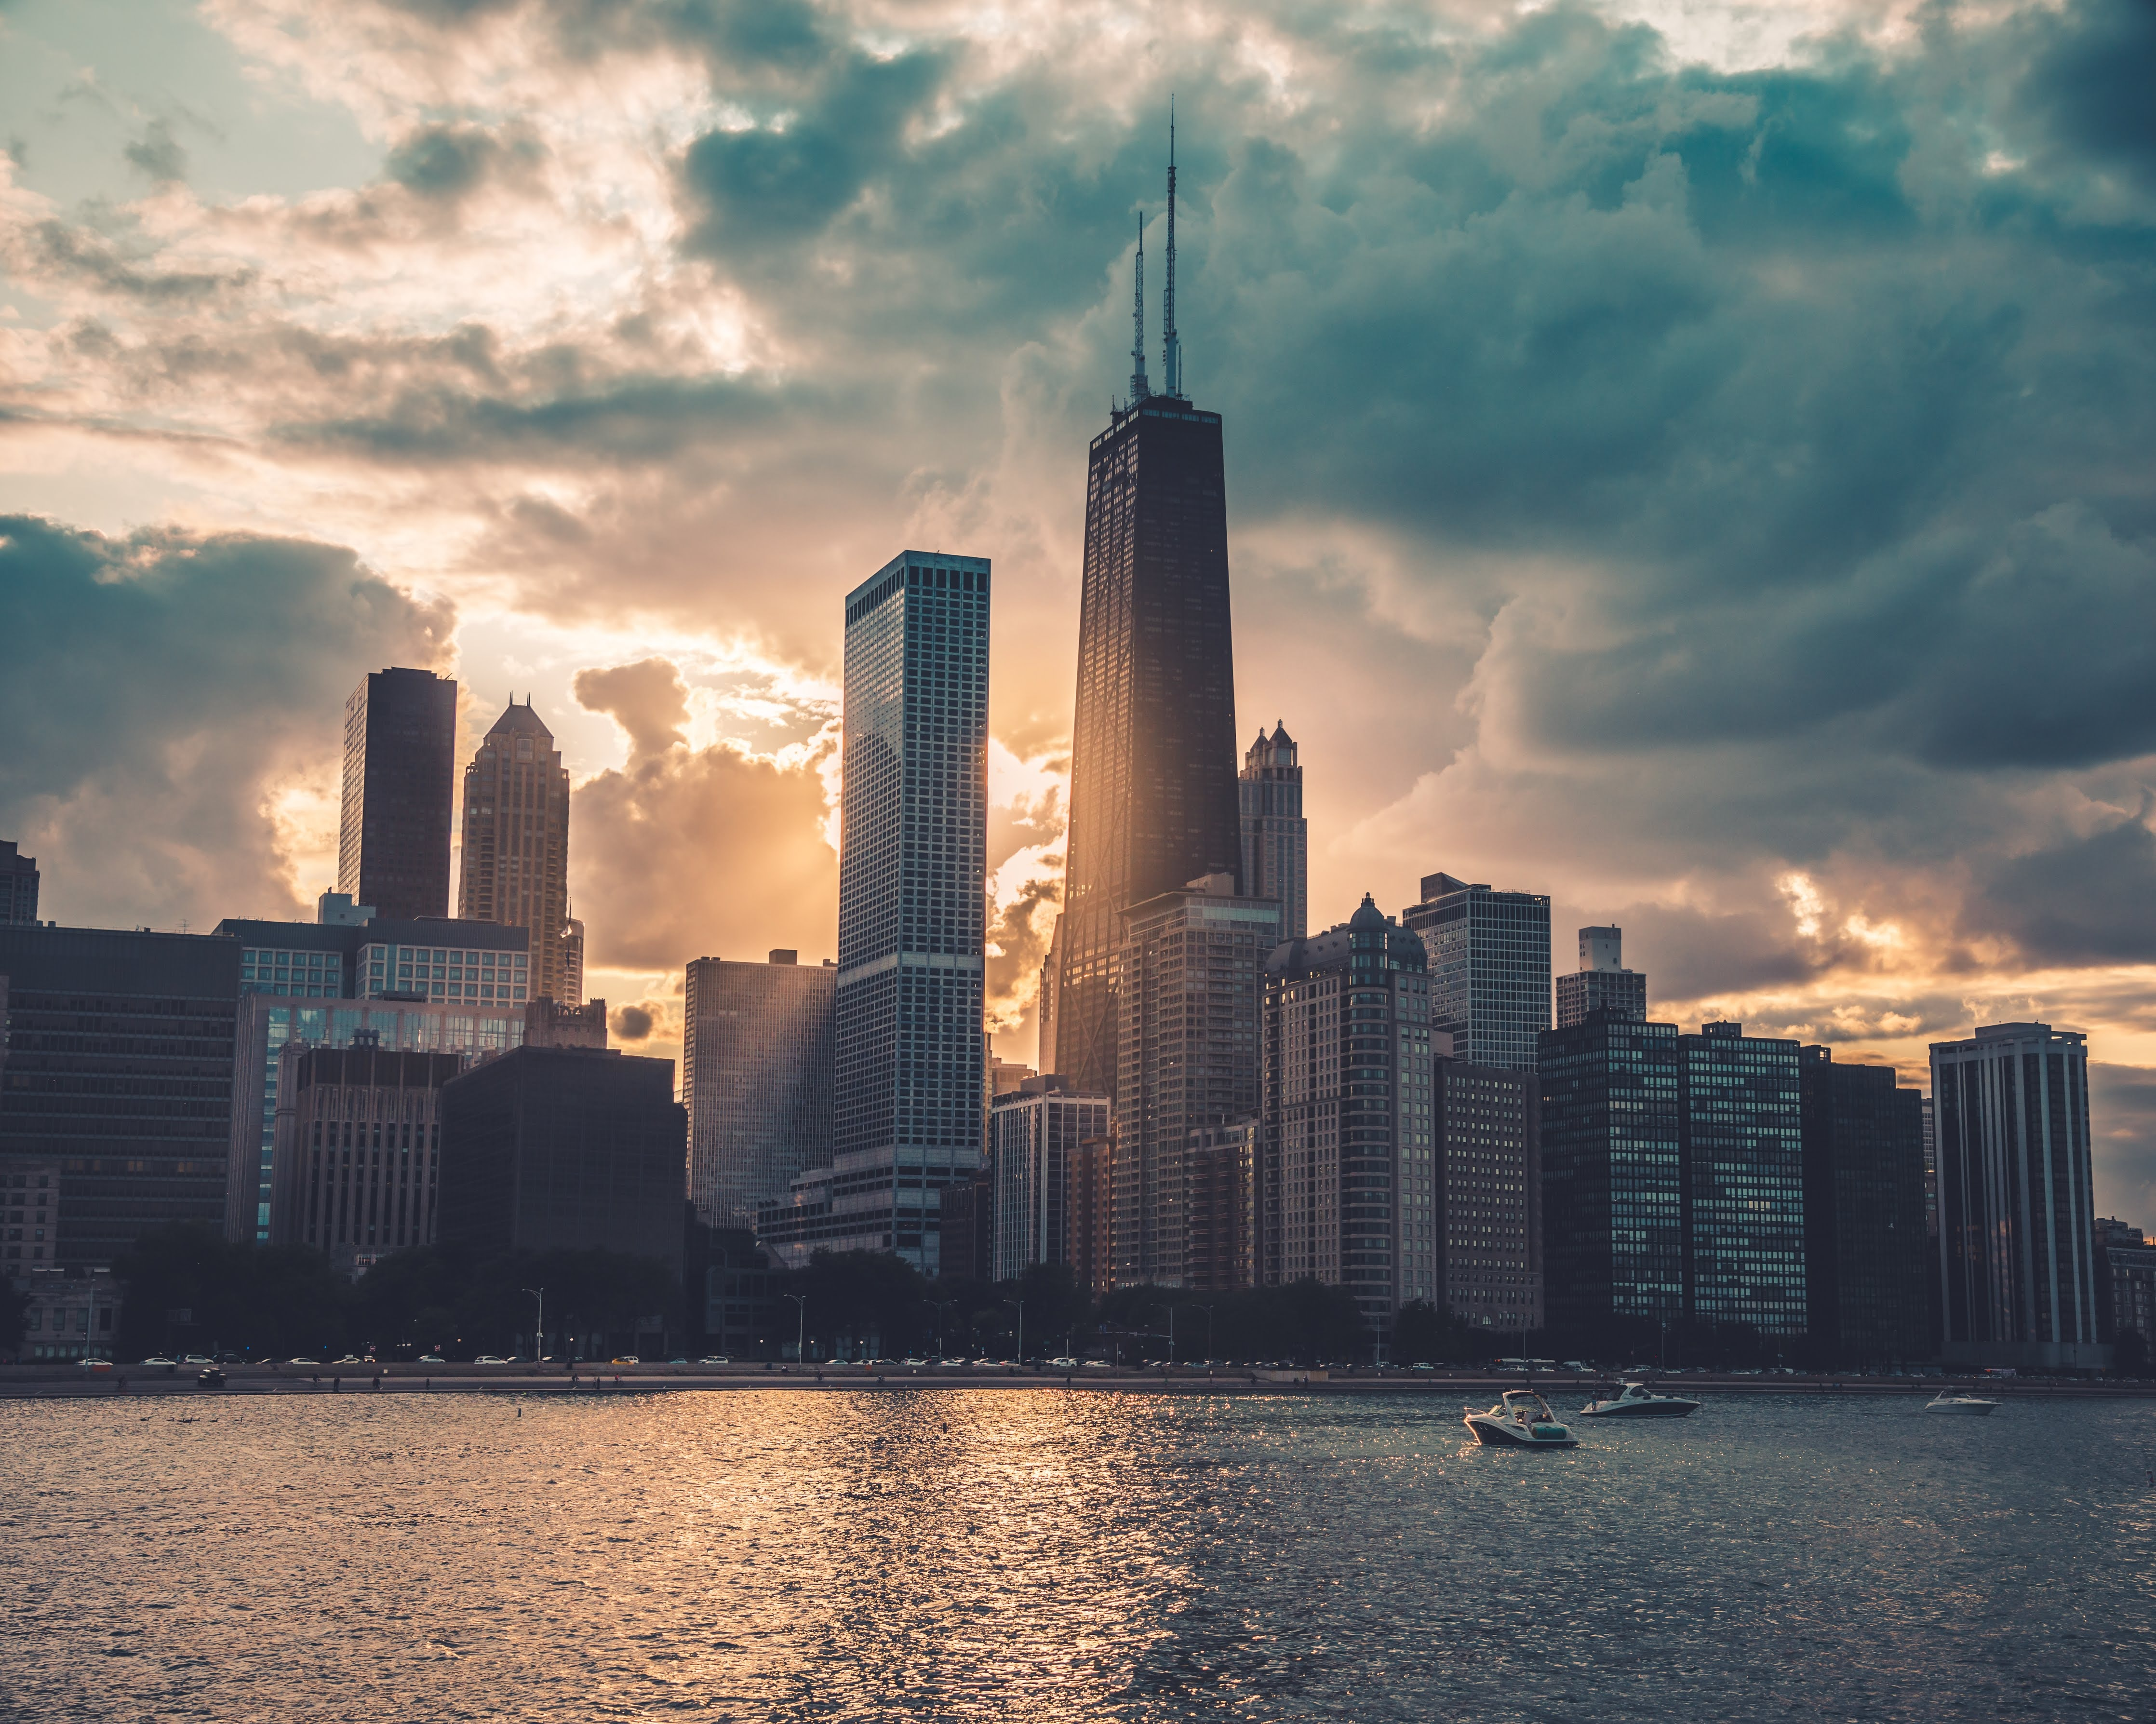 As Chicago logs most violent month, does prayer really make a difference?